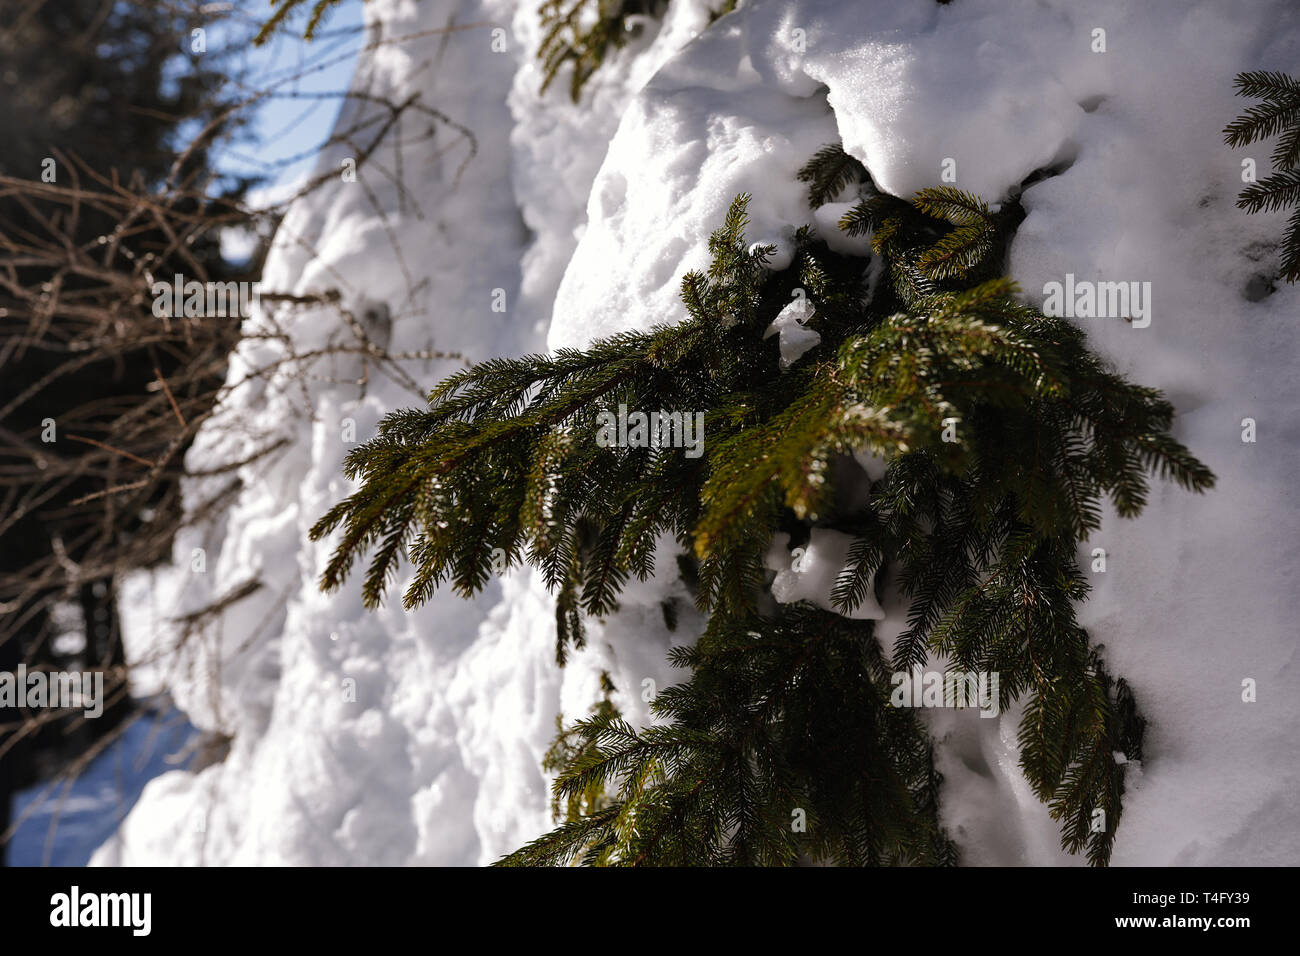 Small green fir-needles, soft white snow lying on the branches. Winter fairytale, Christmas holidays outdoor. Pine tree forest, blue sky, cold and sun Stock Photo